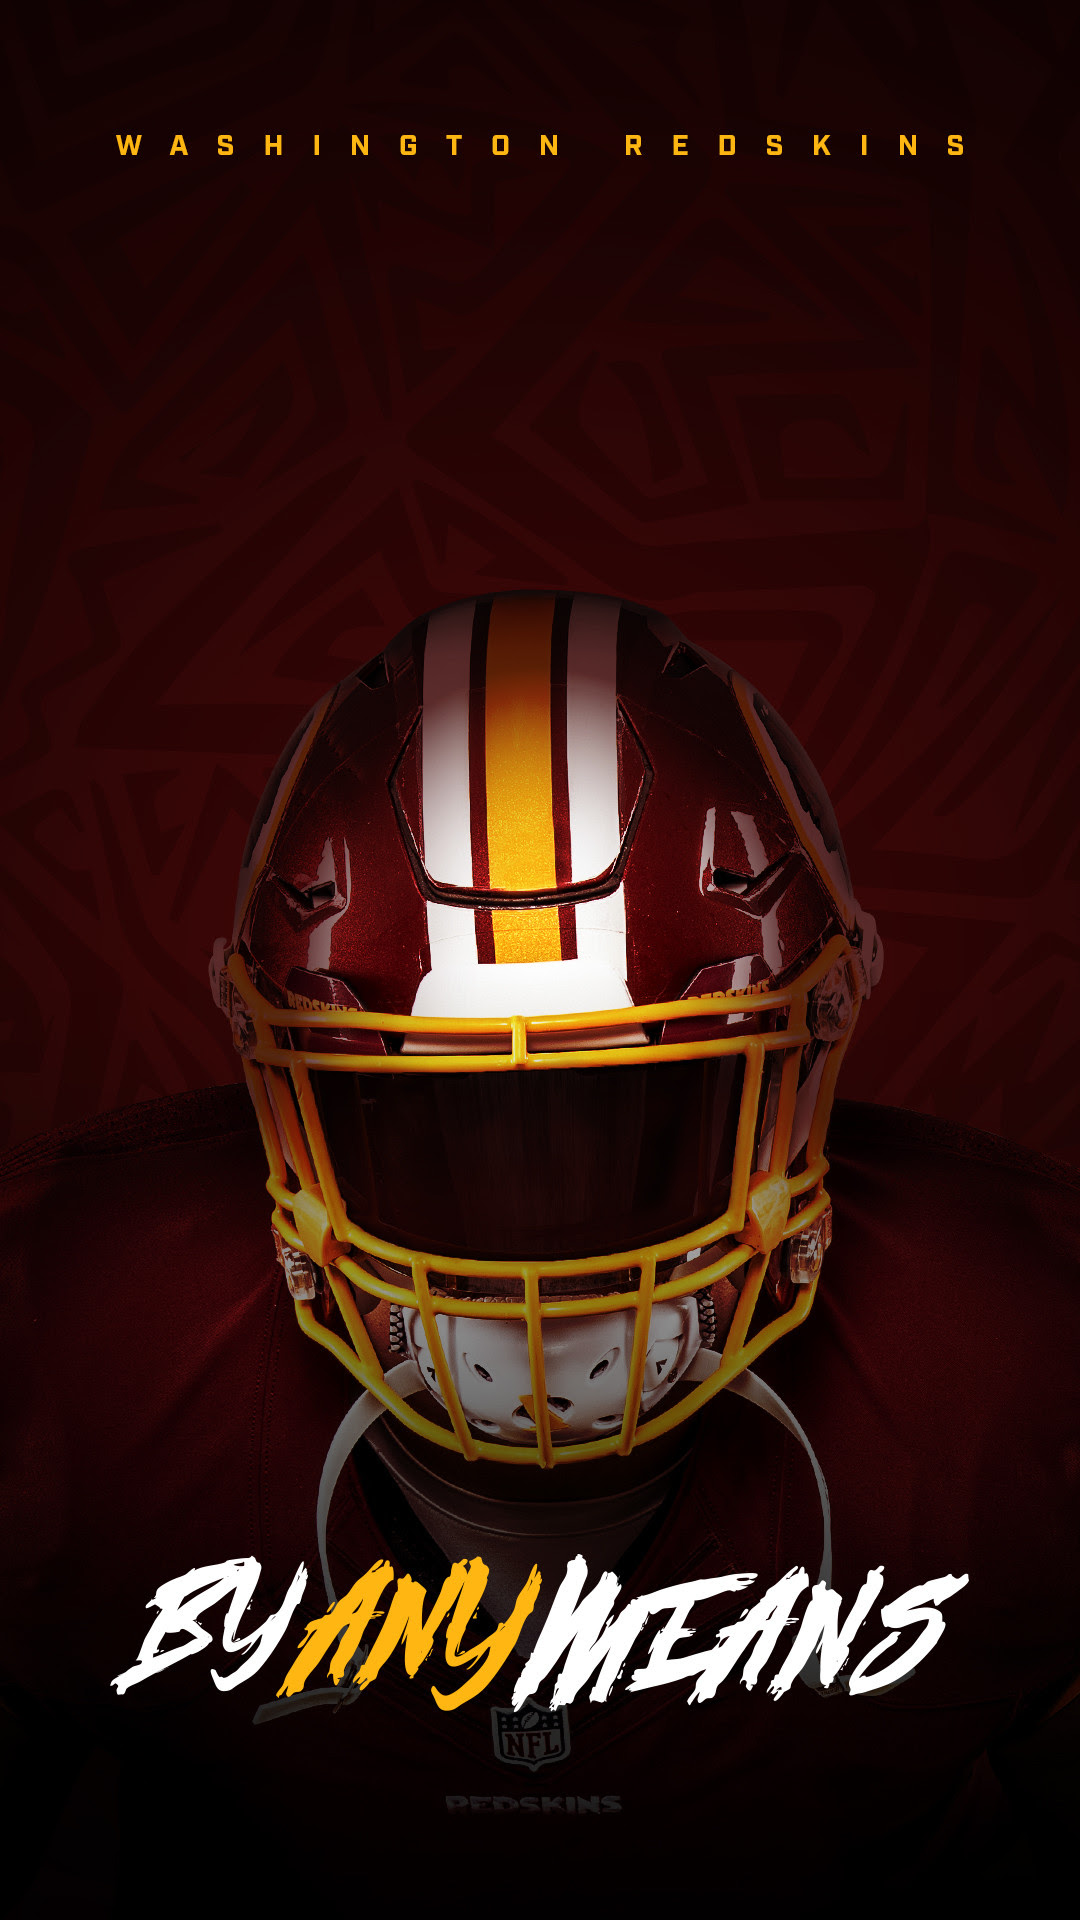 Redskins Wallpaper For Android 67 Images